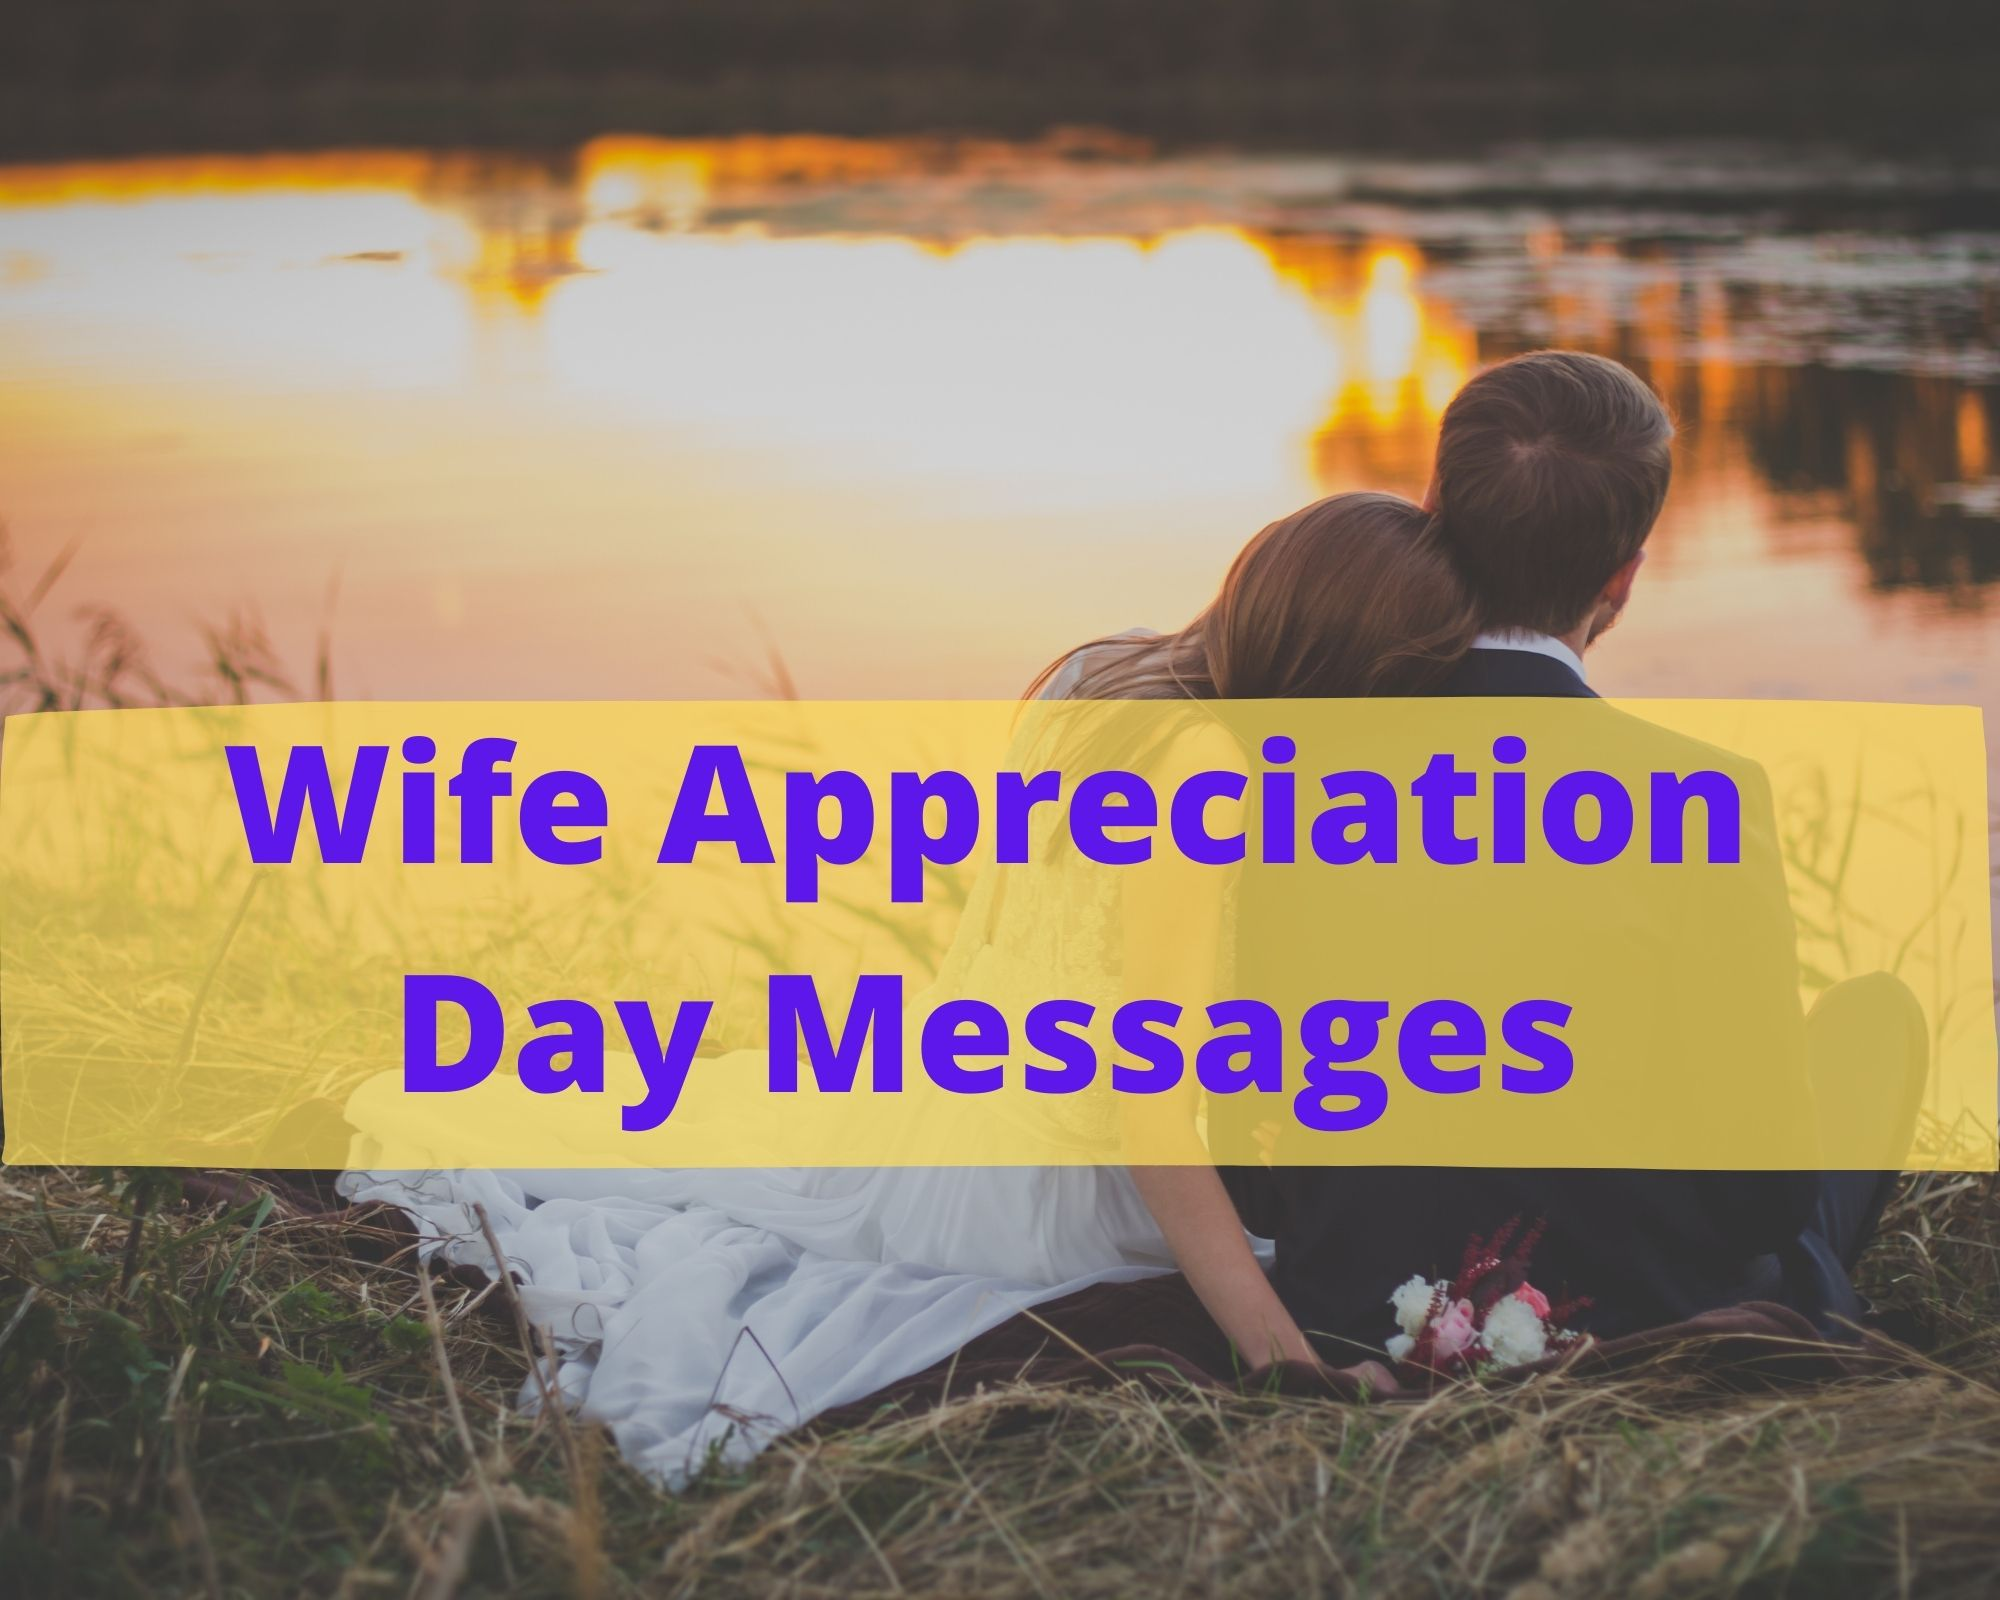 Wife Appreciation Day Messages